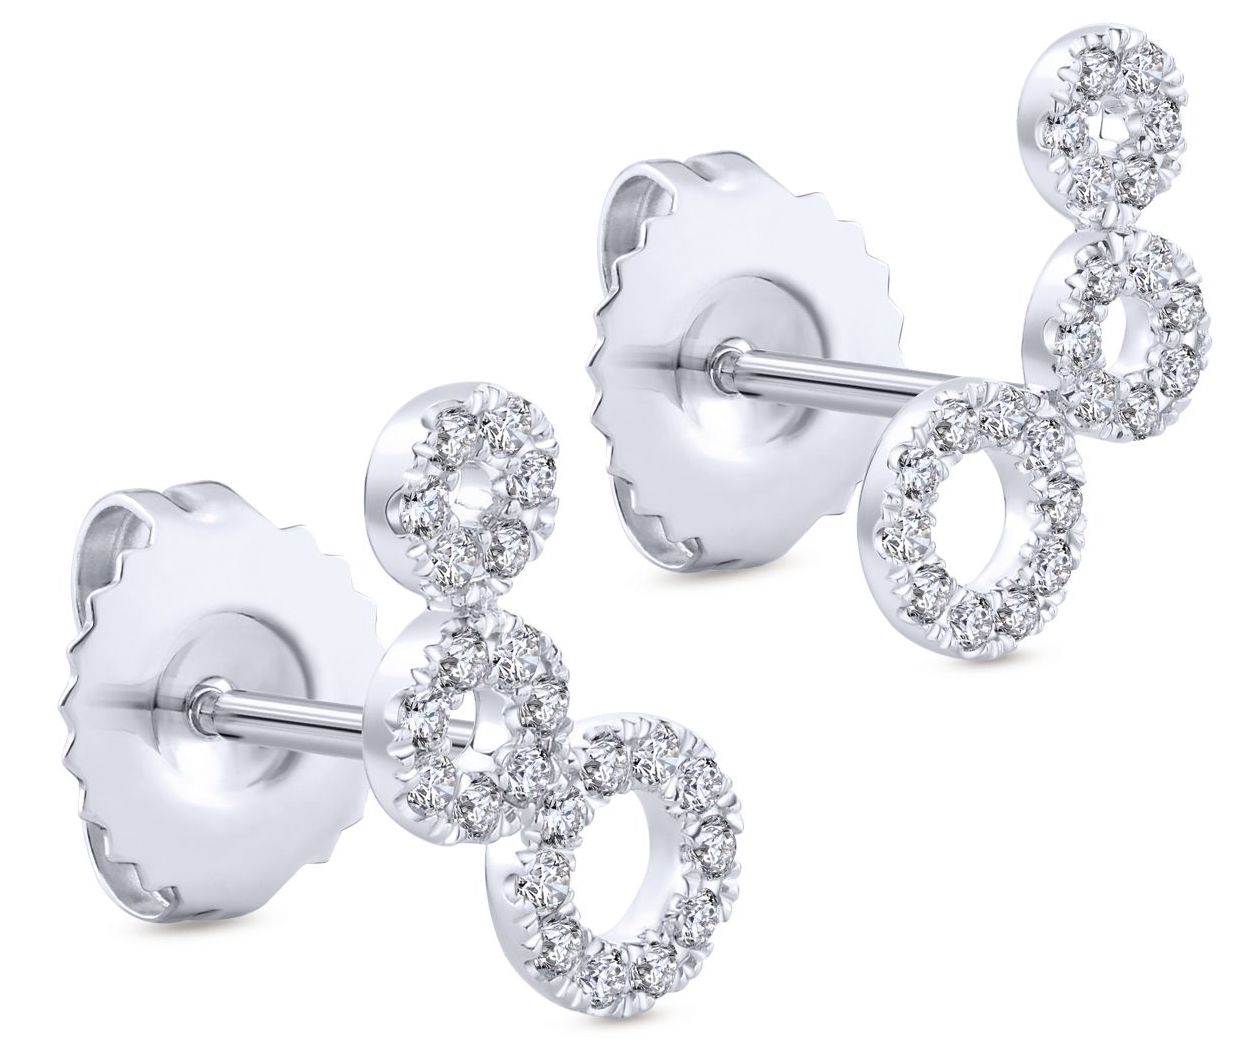 Gabriel and Co. Comets stud earrings | JCK On Your Market